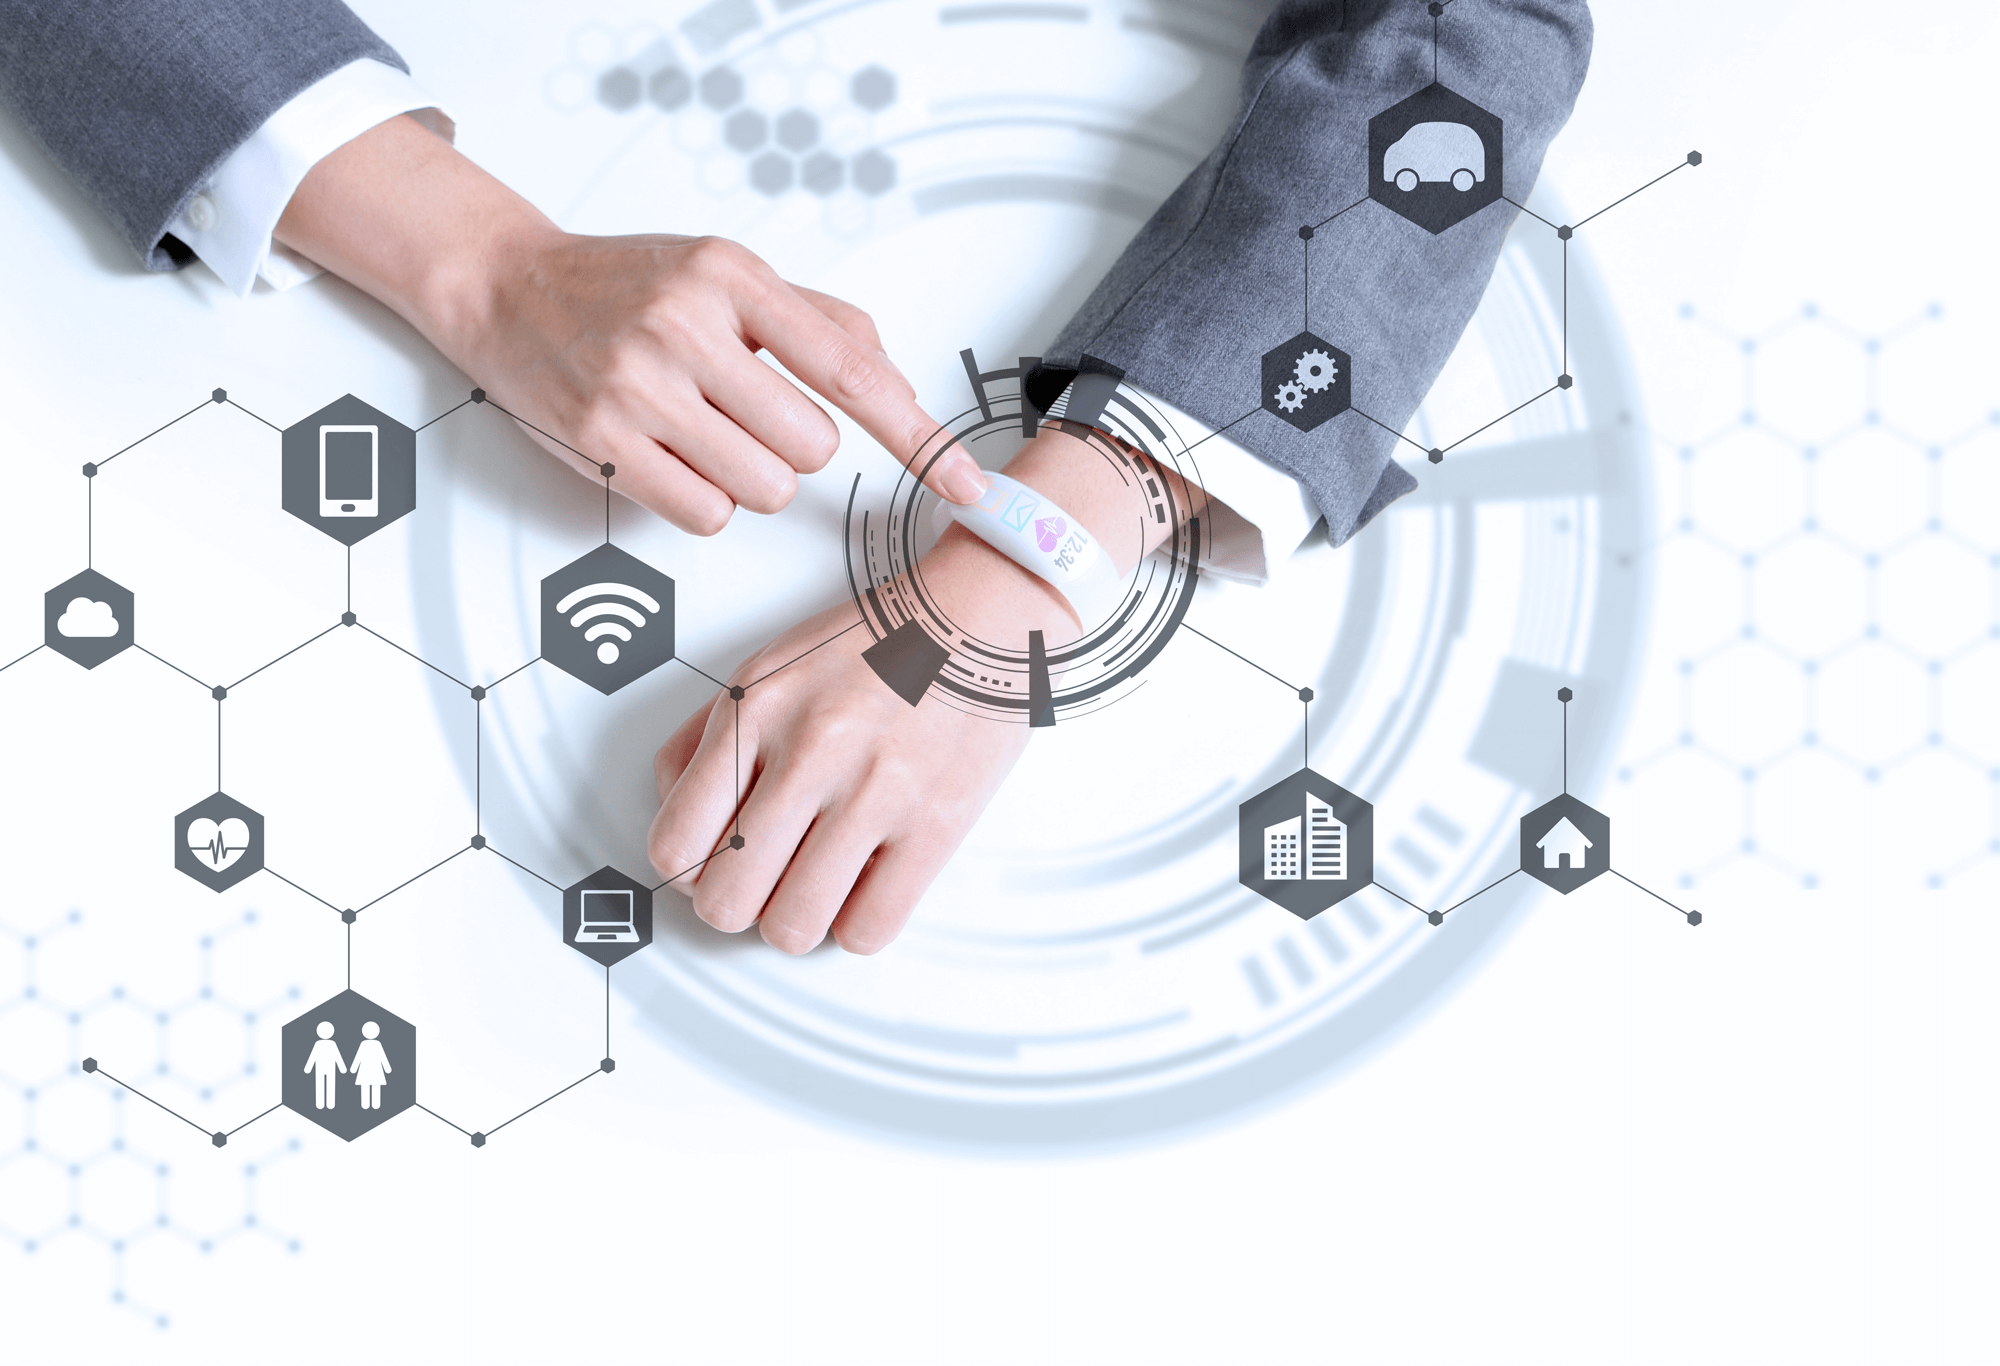 Internet of Things Smart Application